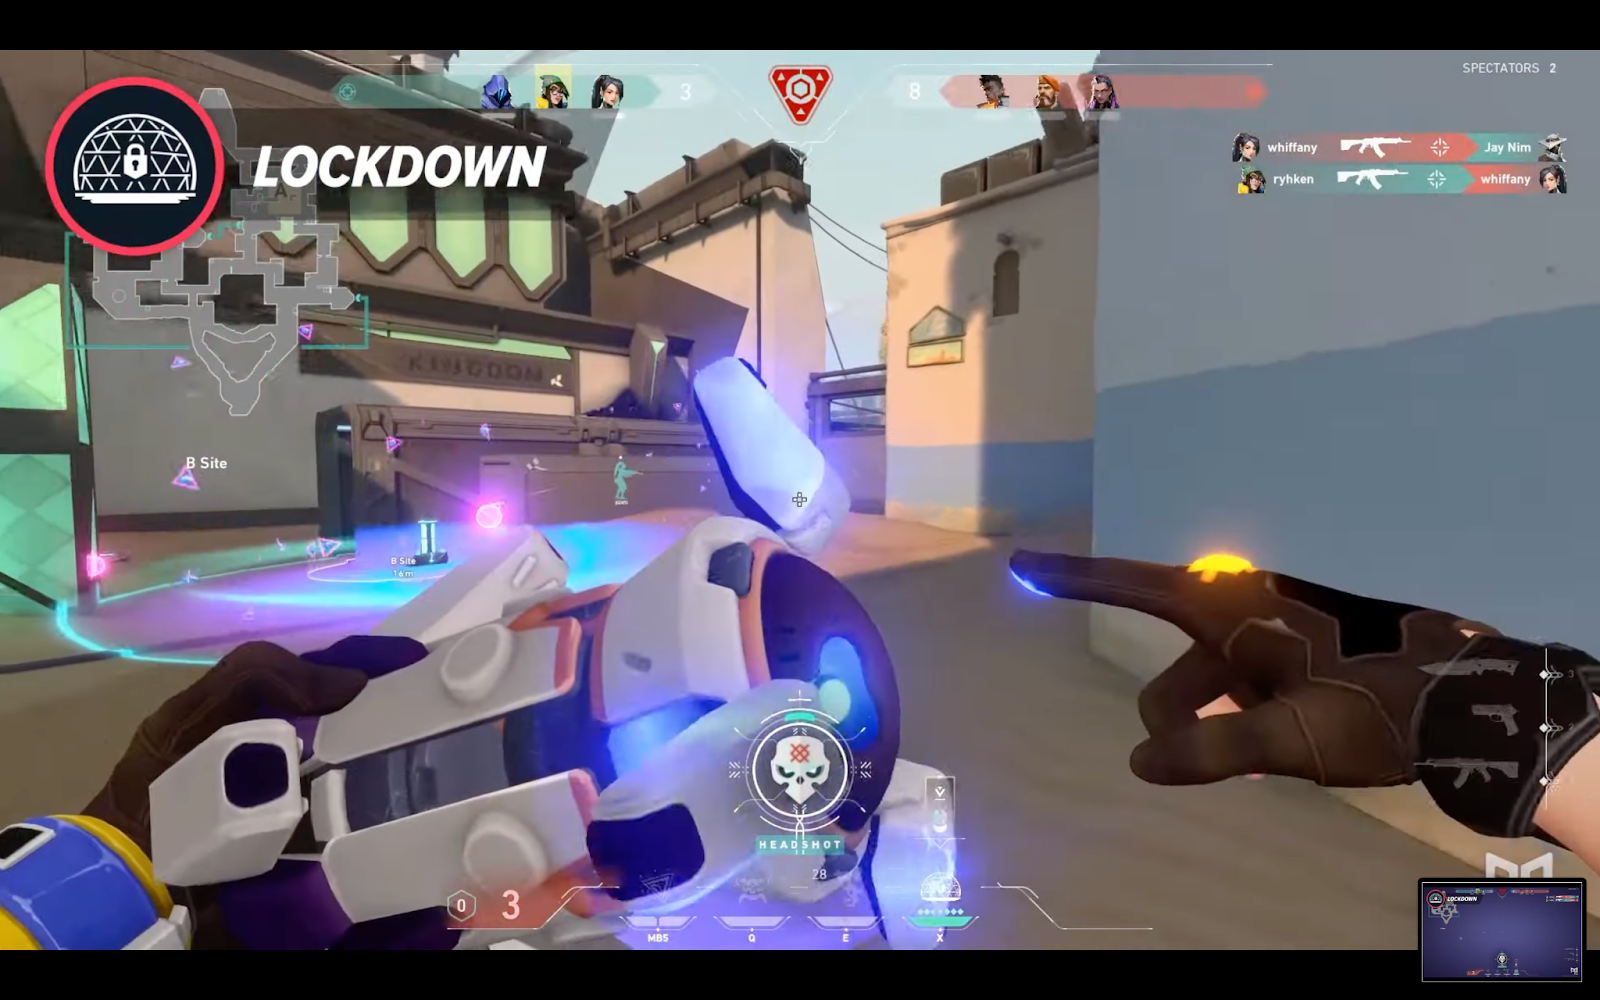 Killjoy placing her Lockdown Ultimate ability to allow her to safely defuse the bomb